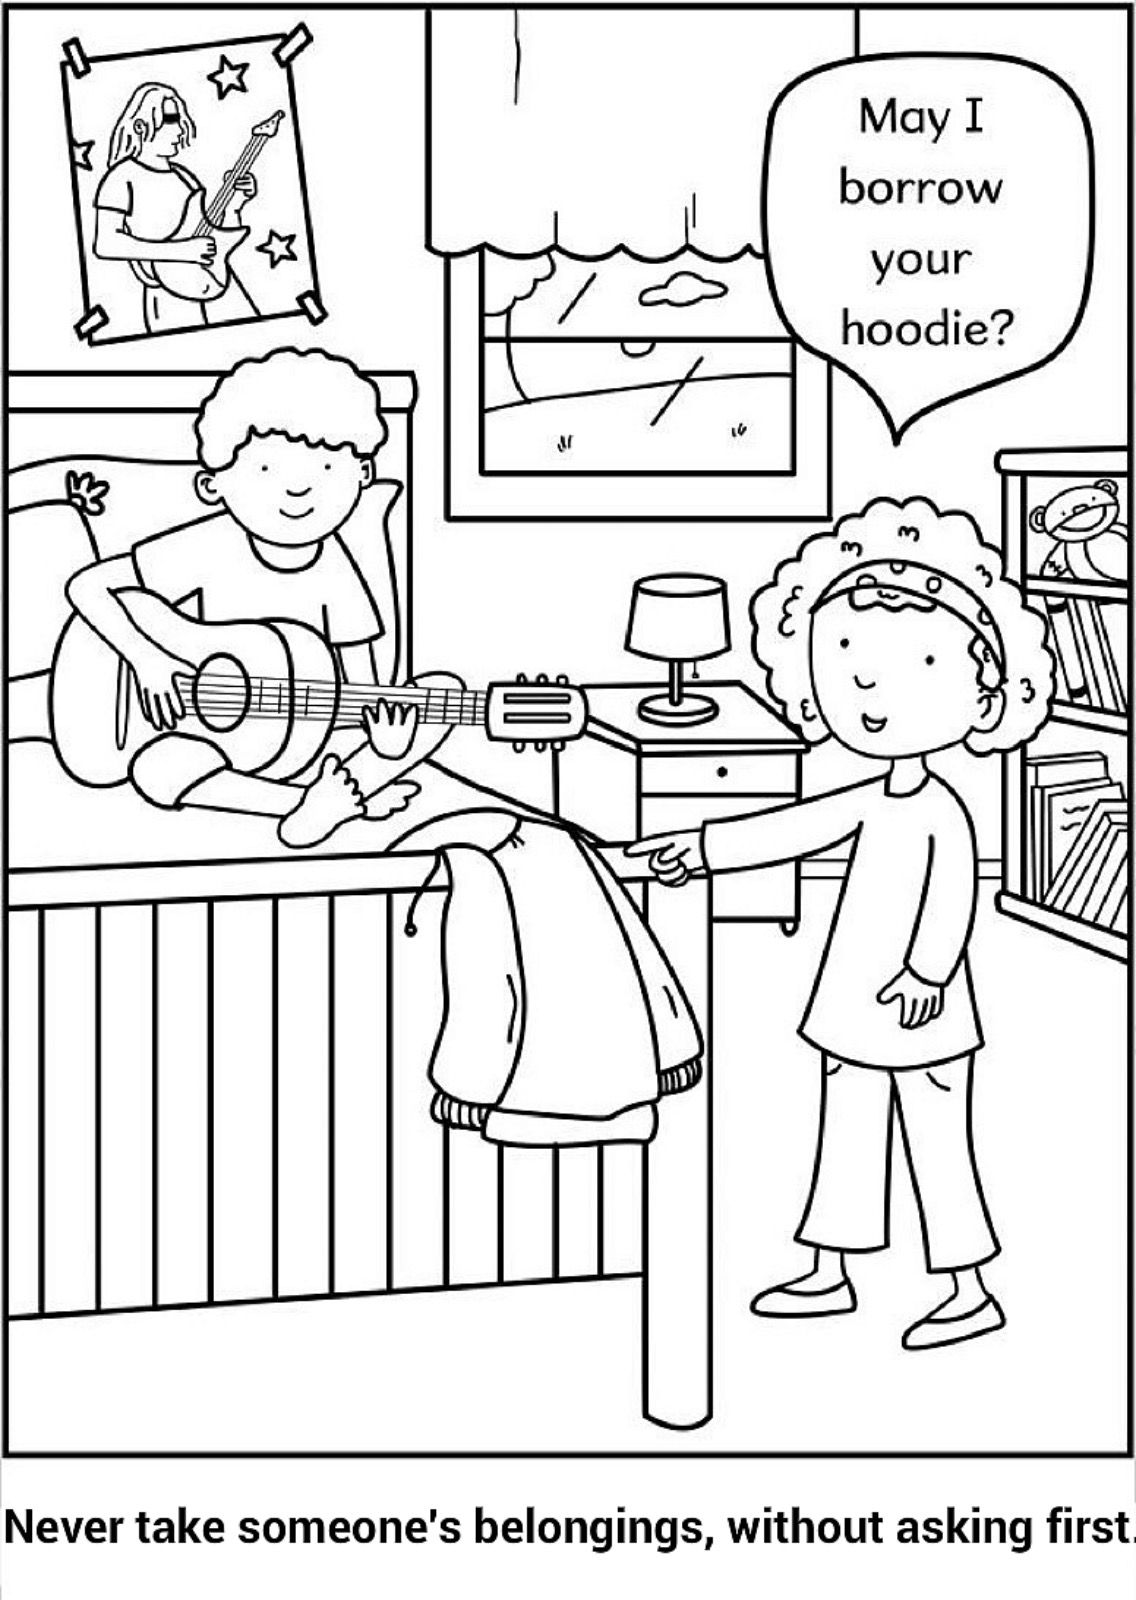 Do Not Steal Coloring Page Preschool Coloring Pages Coloring